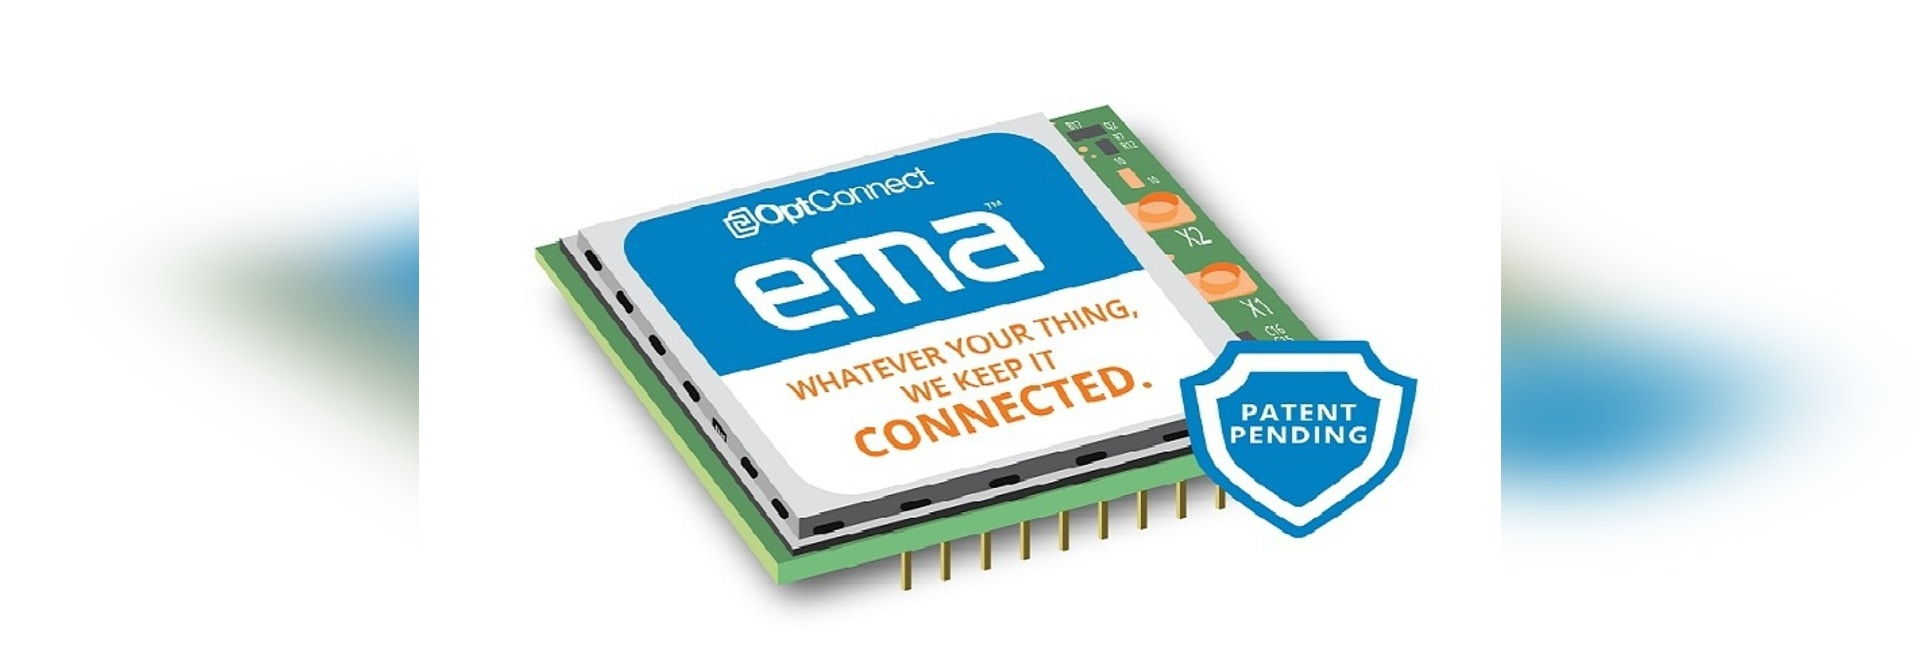 Smart Embedded Modem Addresses IoT Managed Services